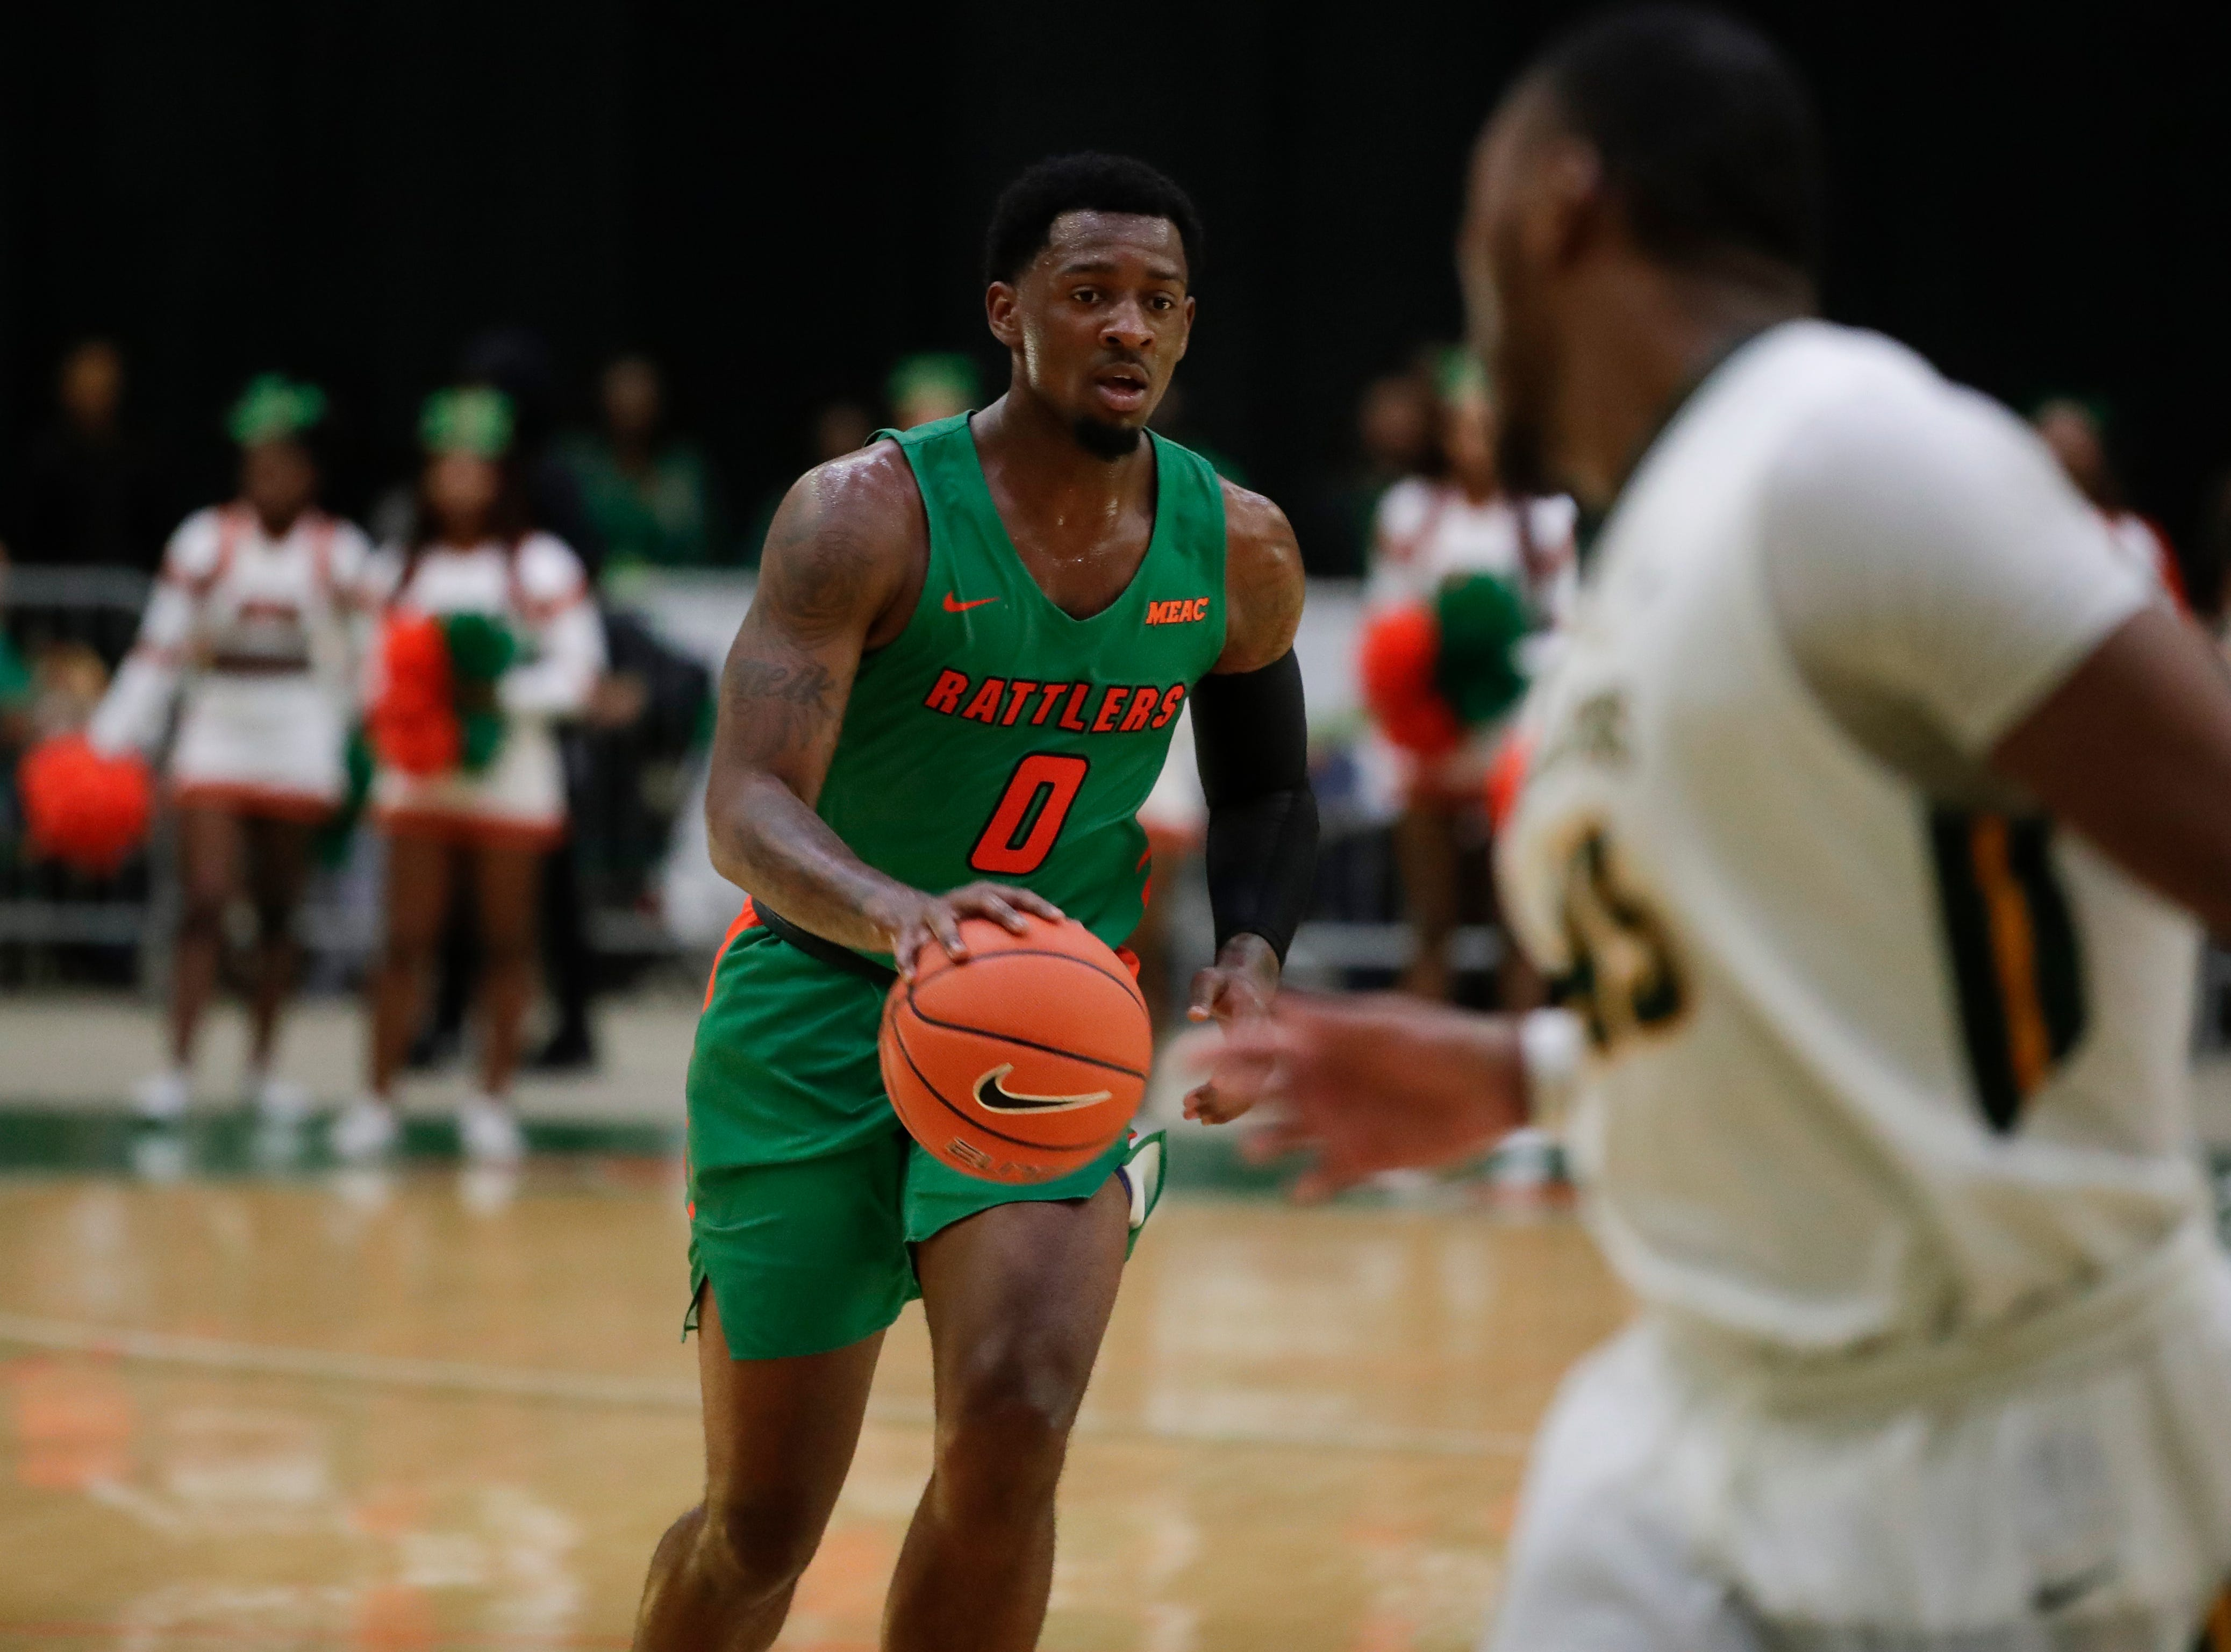 Florida A&M Rattlers forward Tracy Hector Jr. (0) dribbles during a game between FAMU and Norfolk State at the Alfred Lawson Jr. Multipurpose Center Monday, Feb. 11, 2019.